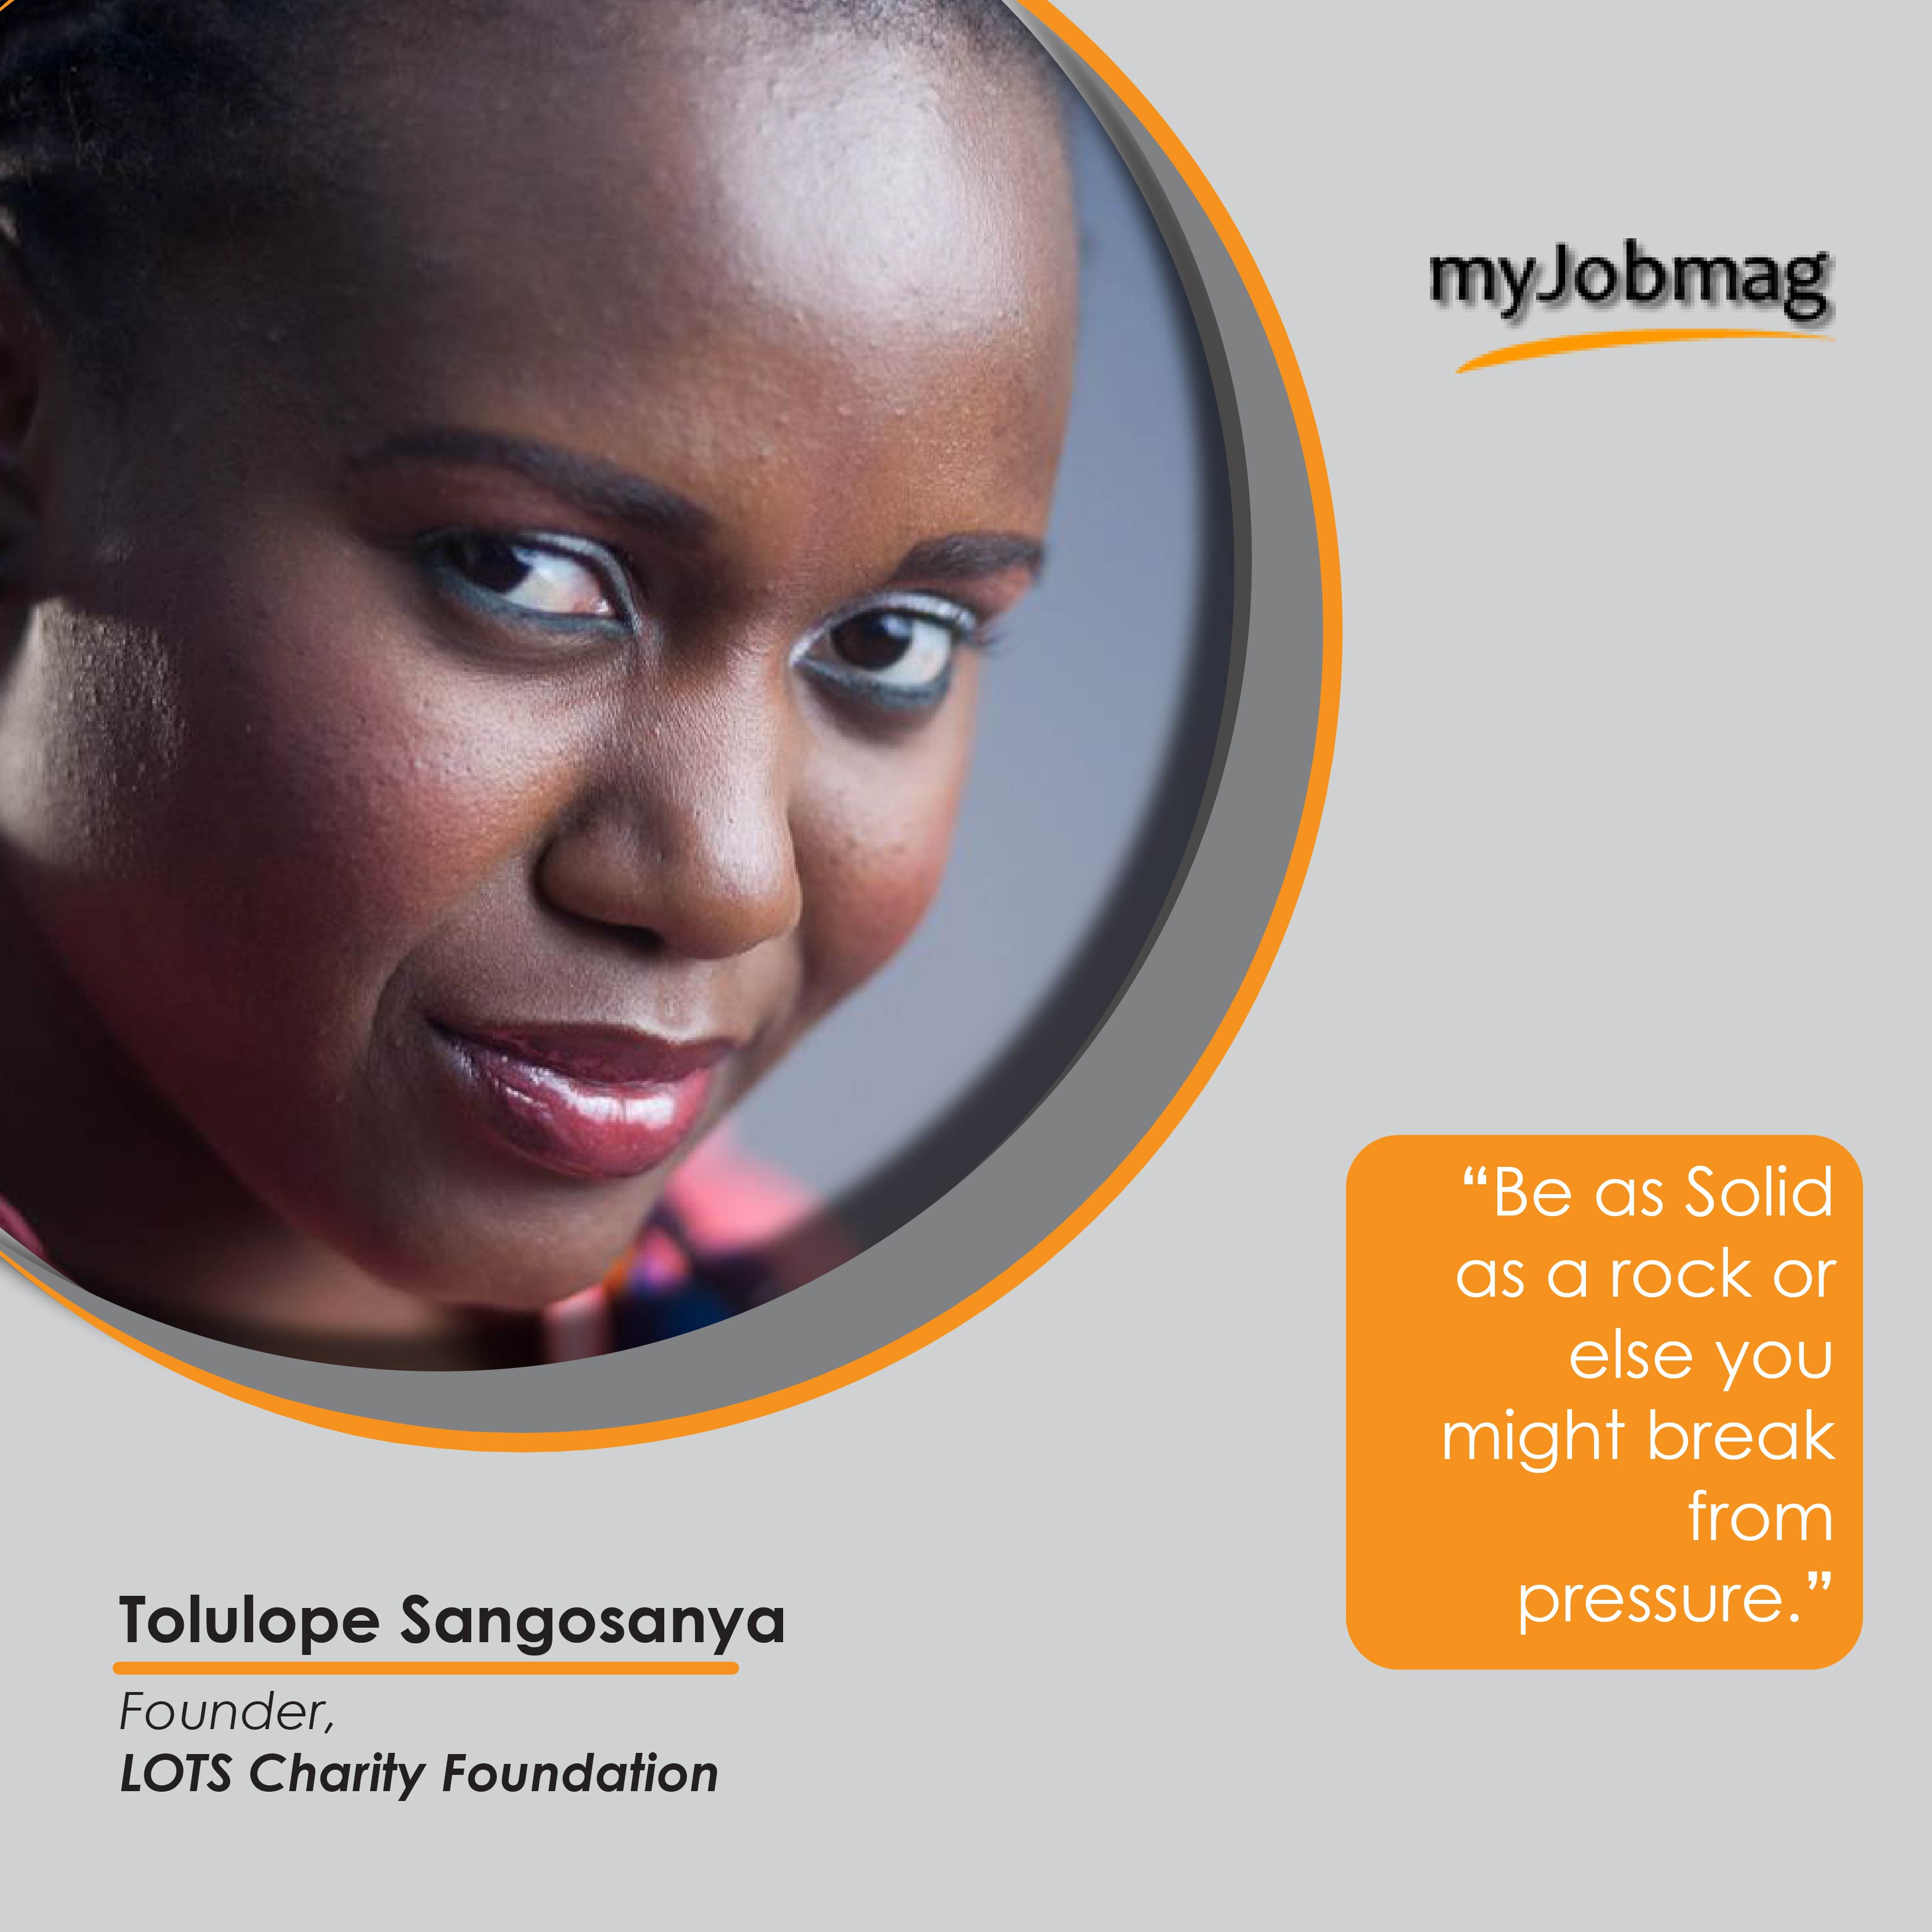 Tolulope Sangosanya career advice MyJobMag